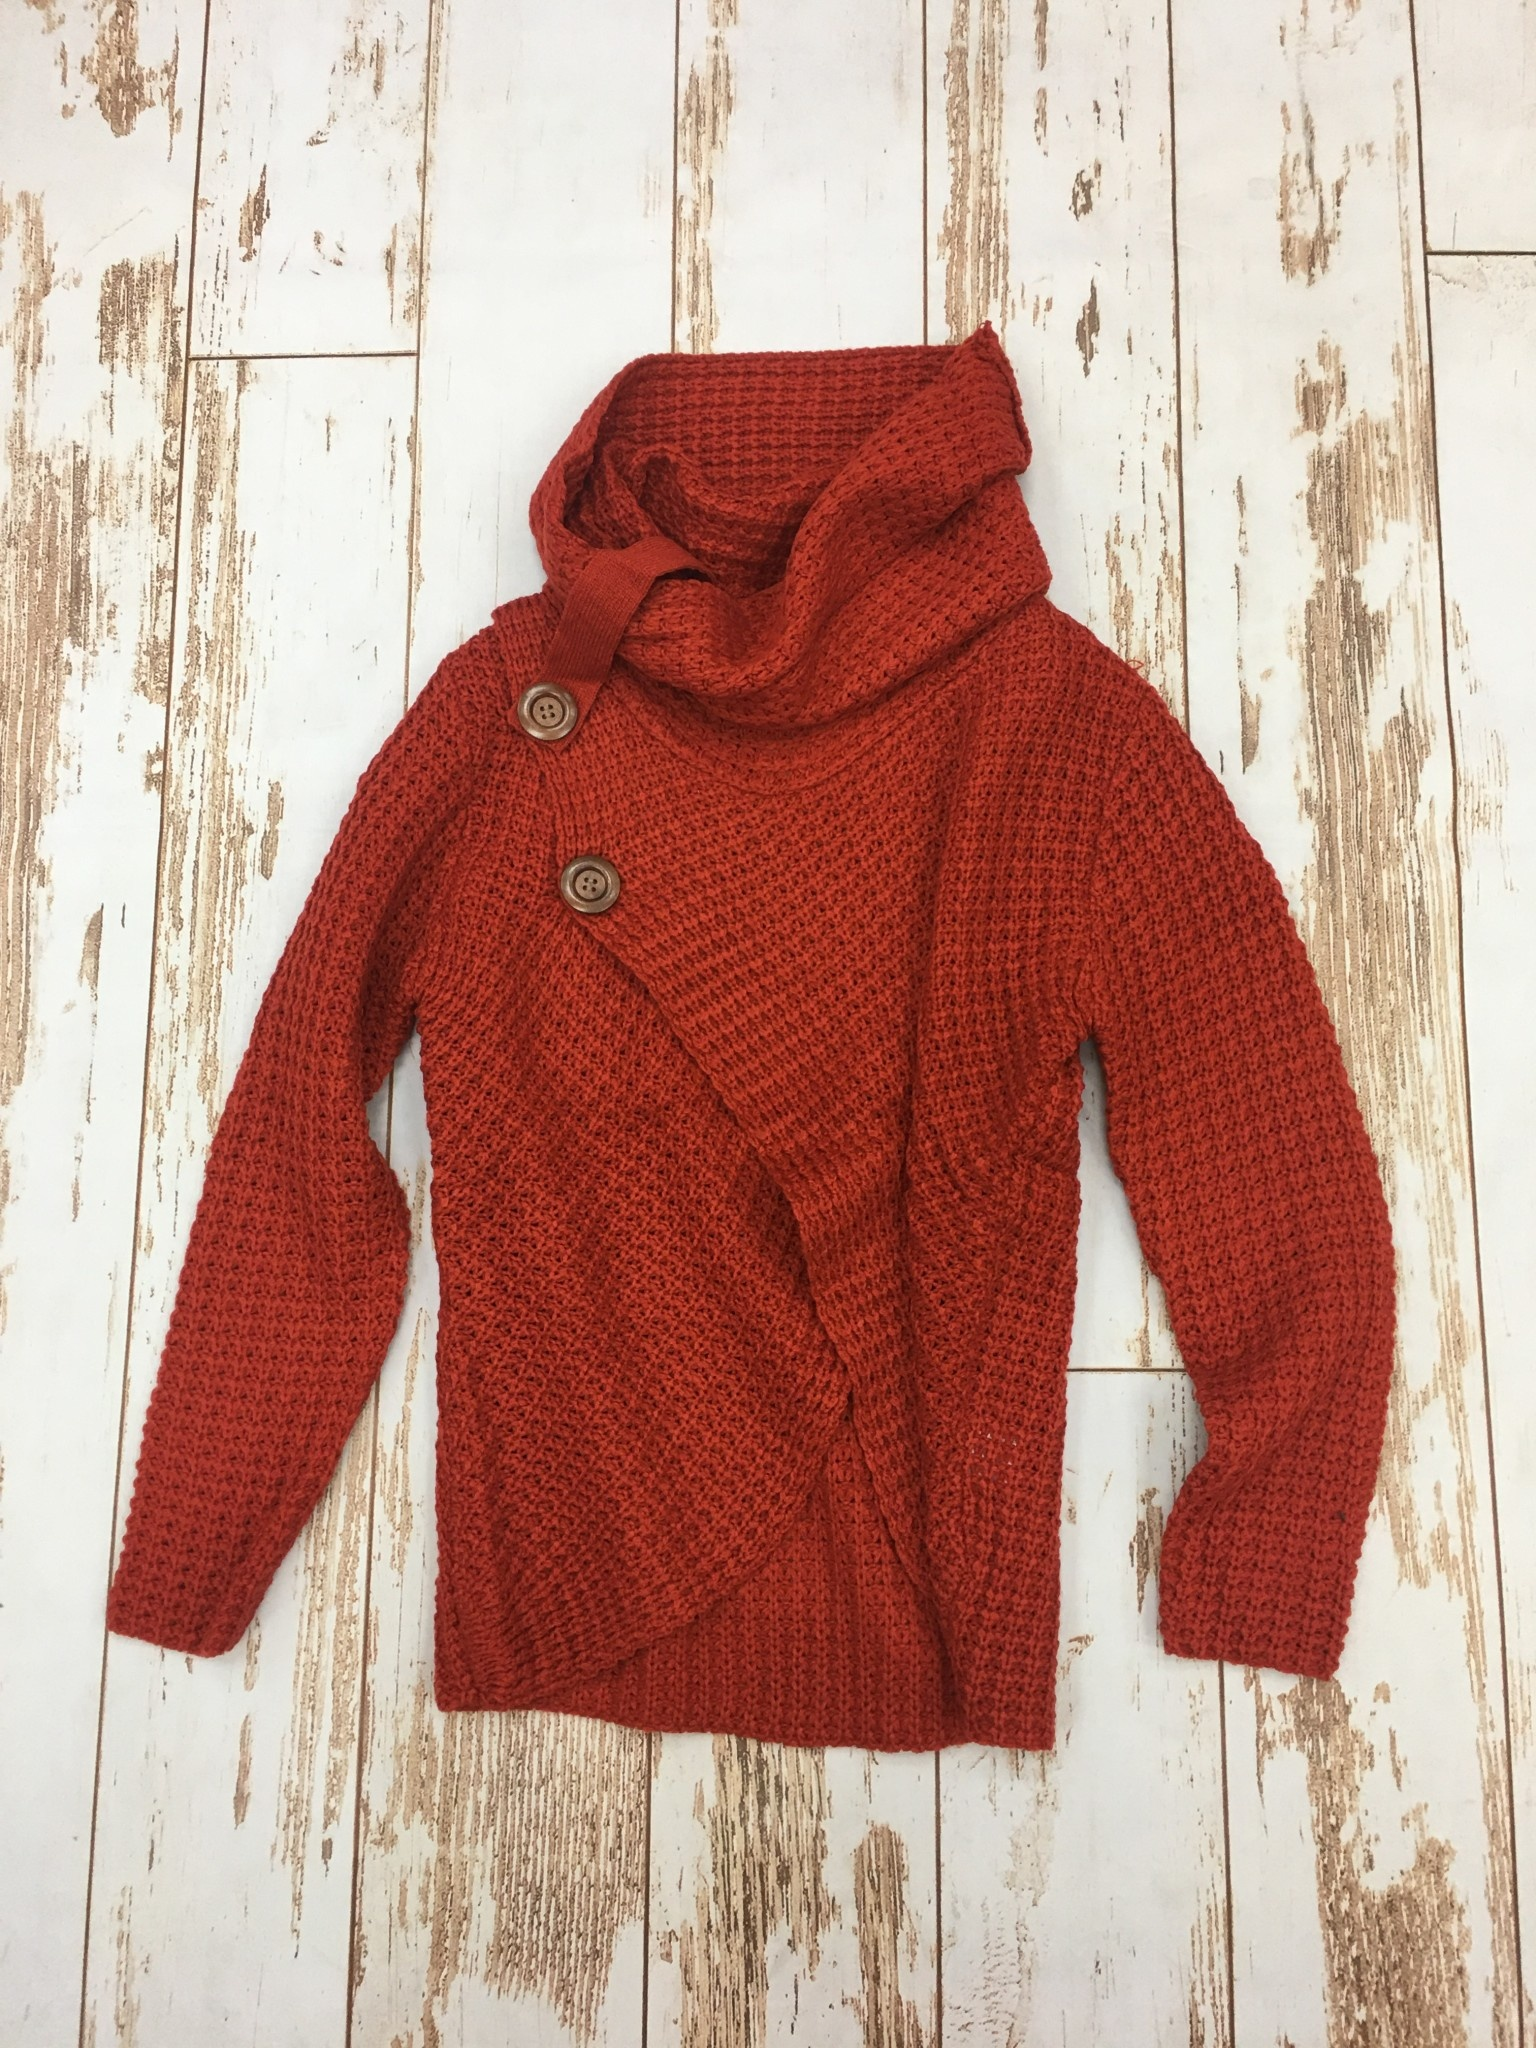 Ashley Clothing Rust Button Crossover Sweater